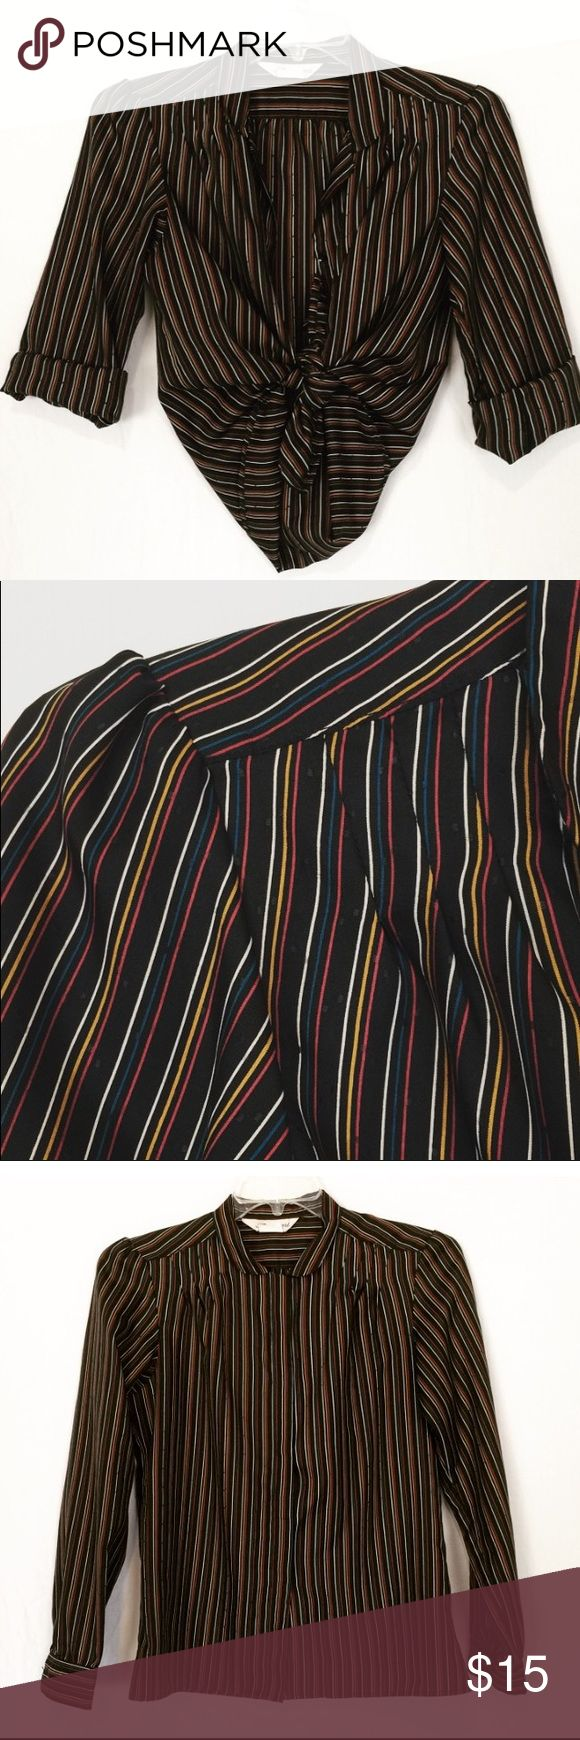 Vintage Blouse stripe long sleeve button down M L Same or next day shipping! Fits Medium & large Bust: 20 in Length: 24 in Tagged: 14 Small snag only visible if you look close ( priced accordingly) otherwise beautiful condition! Silky Polyester long sleeve button down colorful striped Blouse shirt top. Dress up or down. Pair with a pencil skirt for the sexy mad men look or even tie up with high waisted skinnies for casual glam look.  Tags# black rainbow career 12 14 10 size small medium…